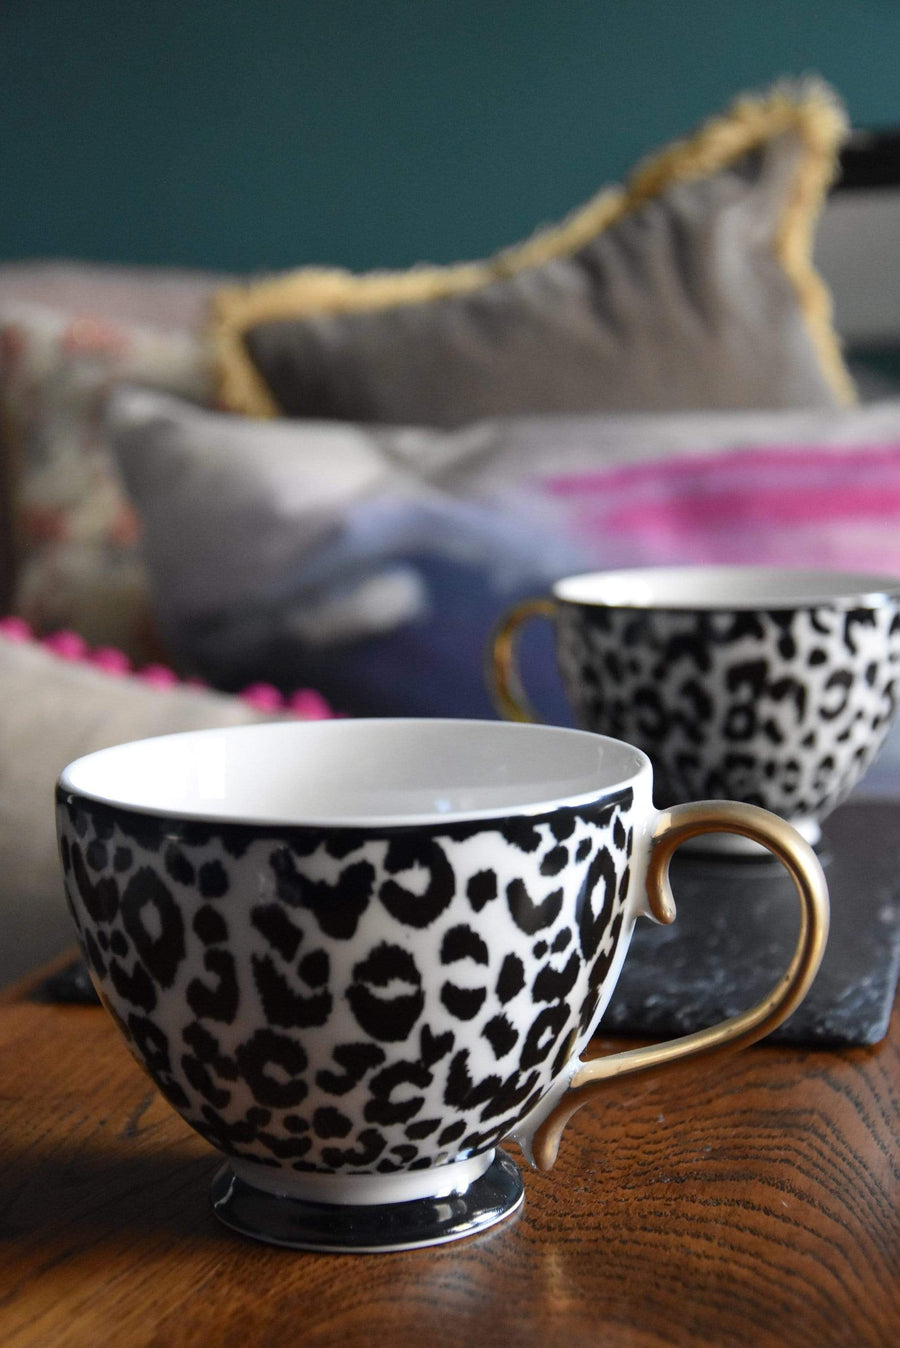 Animal Luxe - Set of 2 Footed Mug - Leopard Print Black and Gold